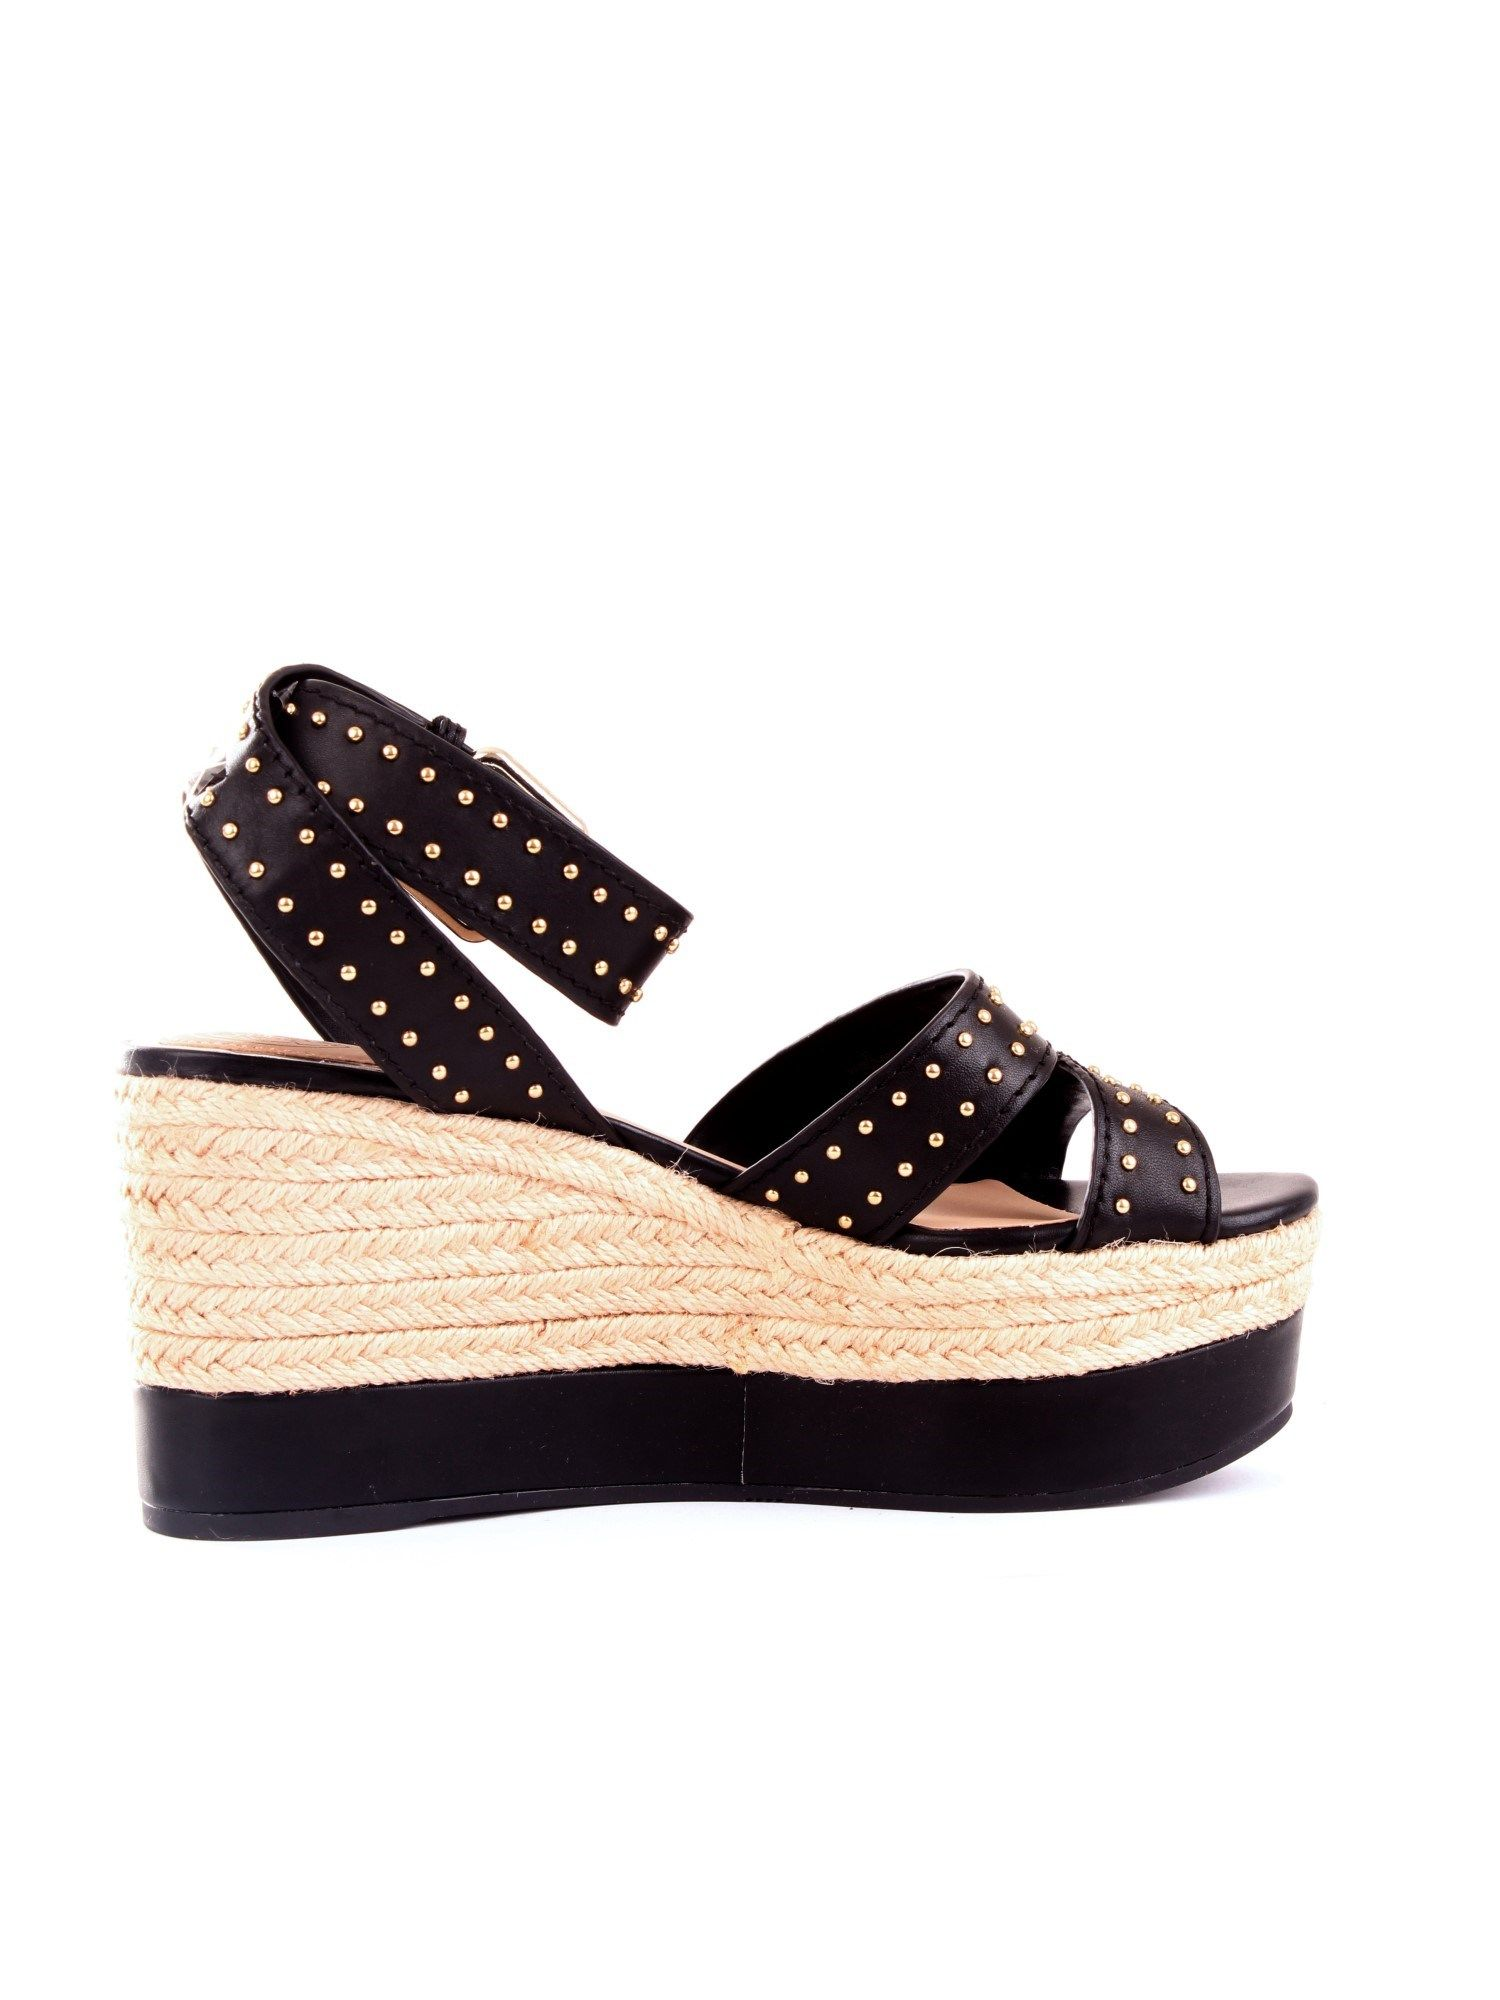 Guess GUESS WOMEN'S FL6LAELEA04BLACK BLACK SYNTHETIC FIBERS WEDGES